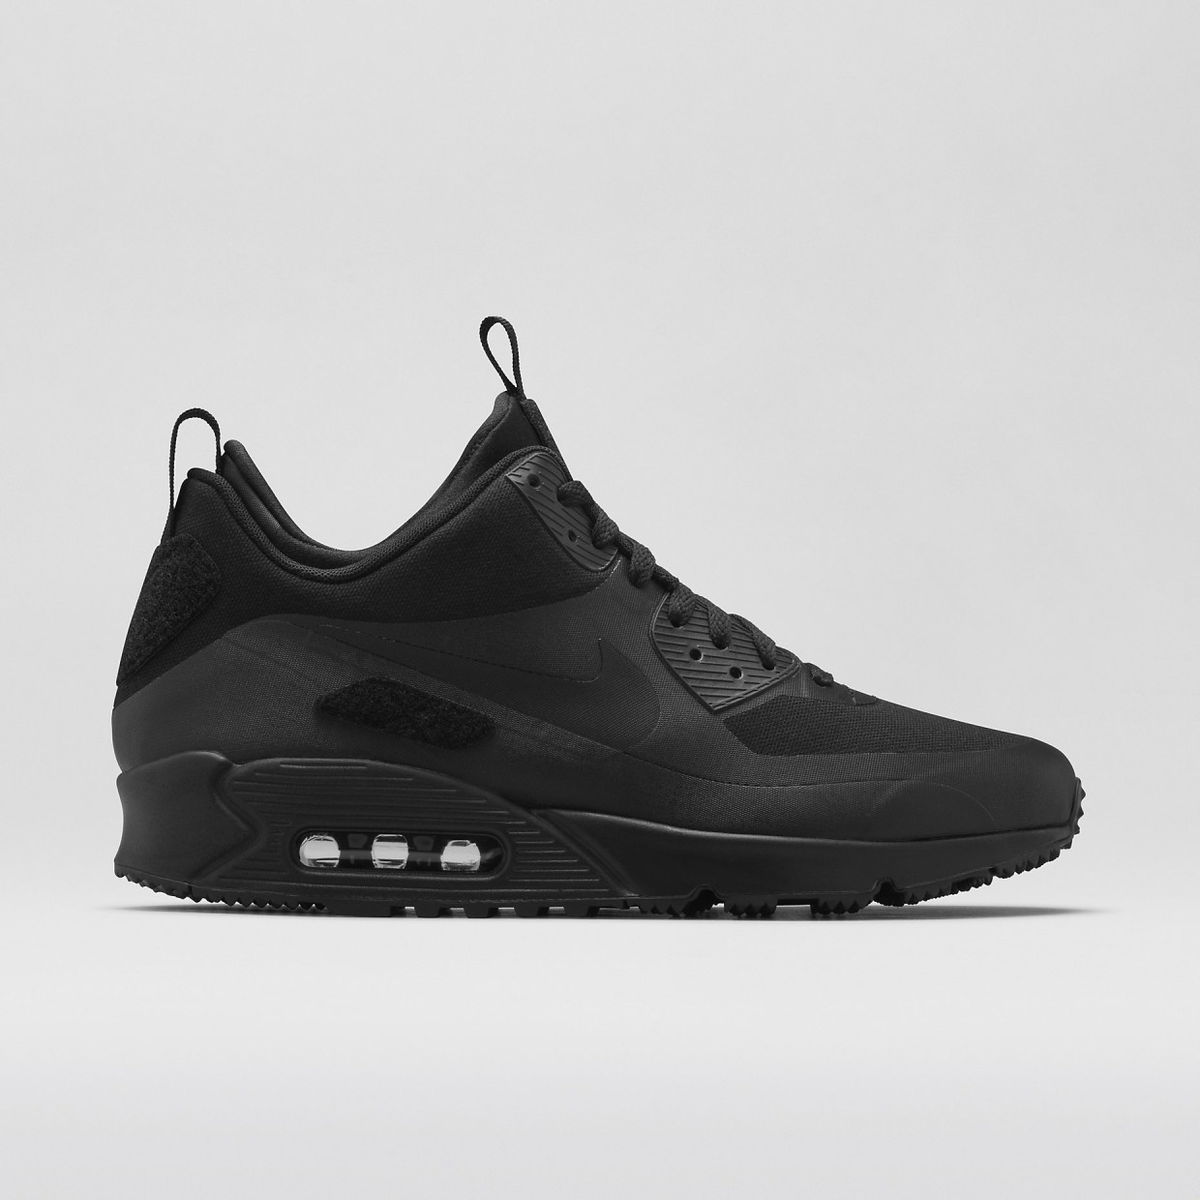 promo code 1cfe2 a3670 Nike Air Max 90 Sneakerboot  Patch Pack  SP all 3 colors available again   http   ist.290sqm.com Just-Arrived pic.twitter.com IAjBnX9bkp